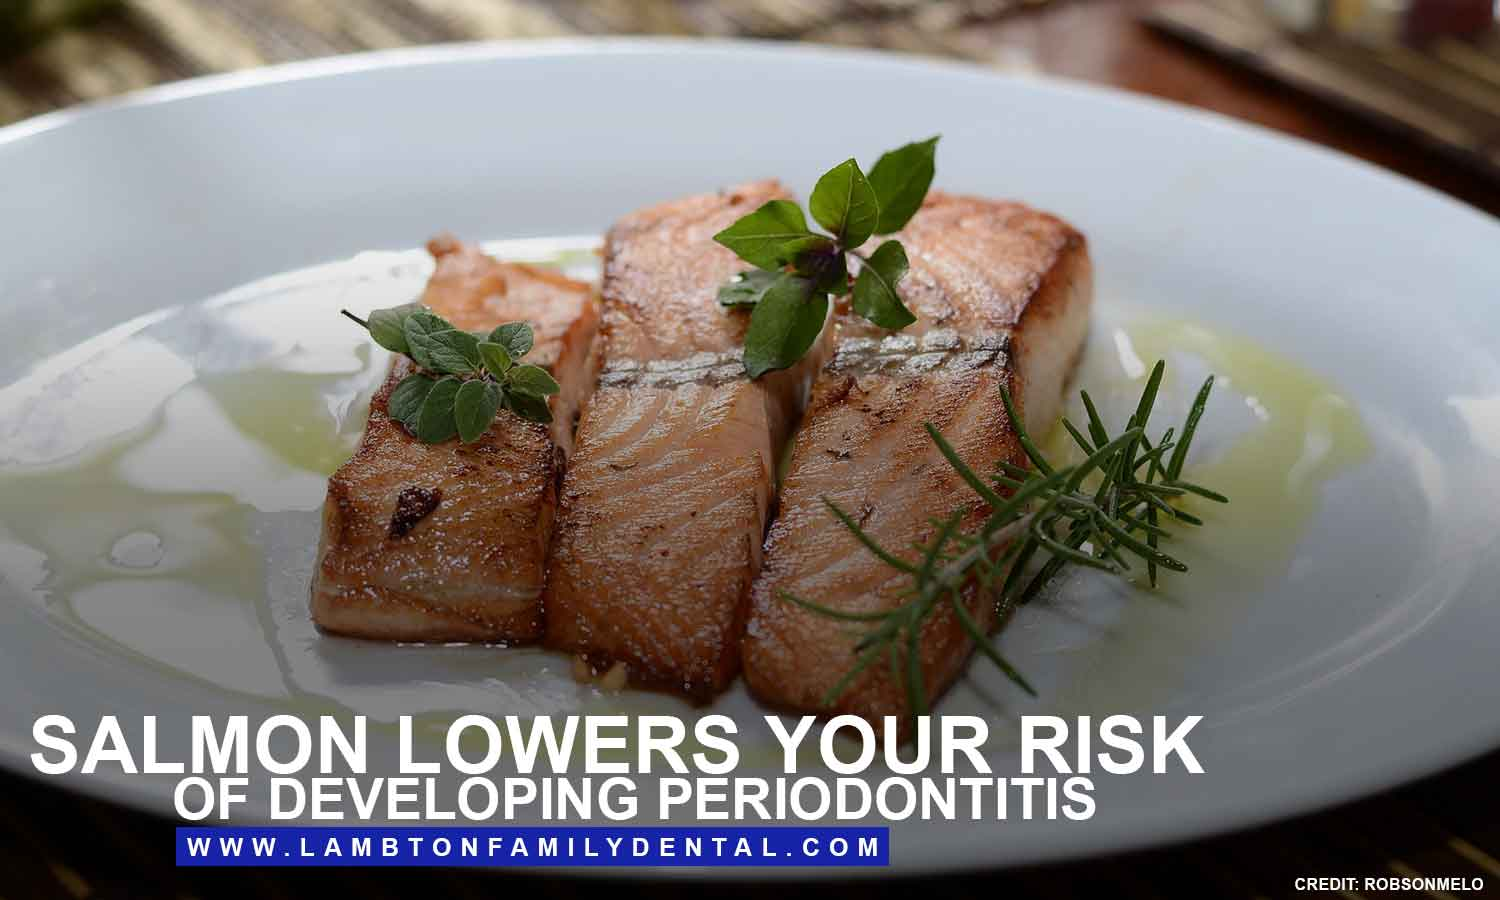 Salmon lowers your risk of developing periodontitis